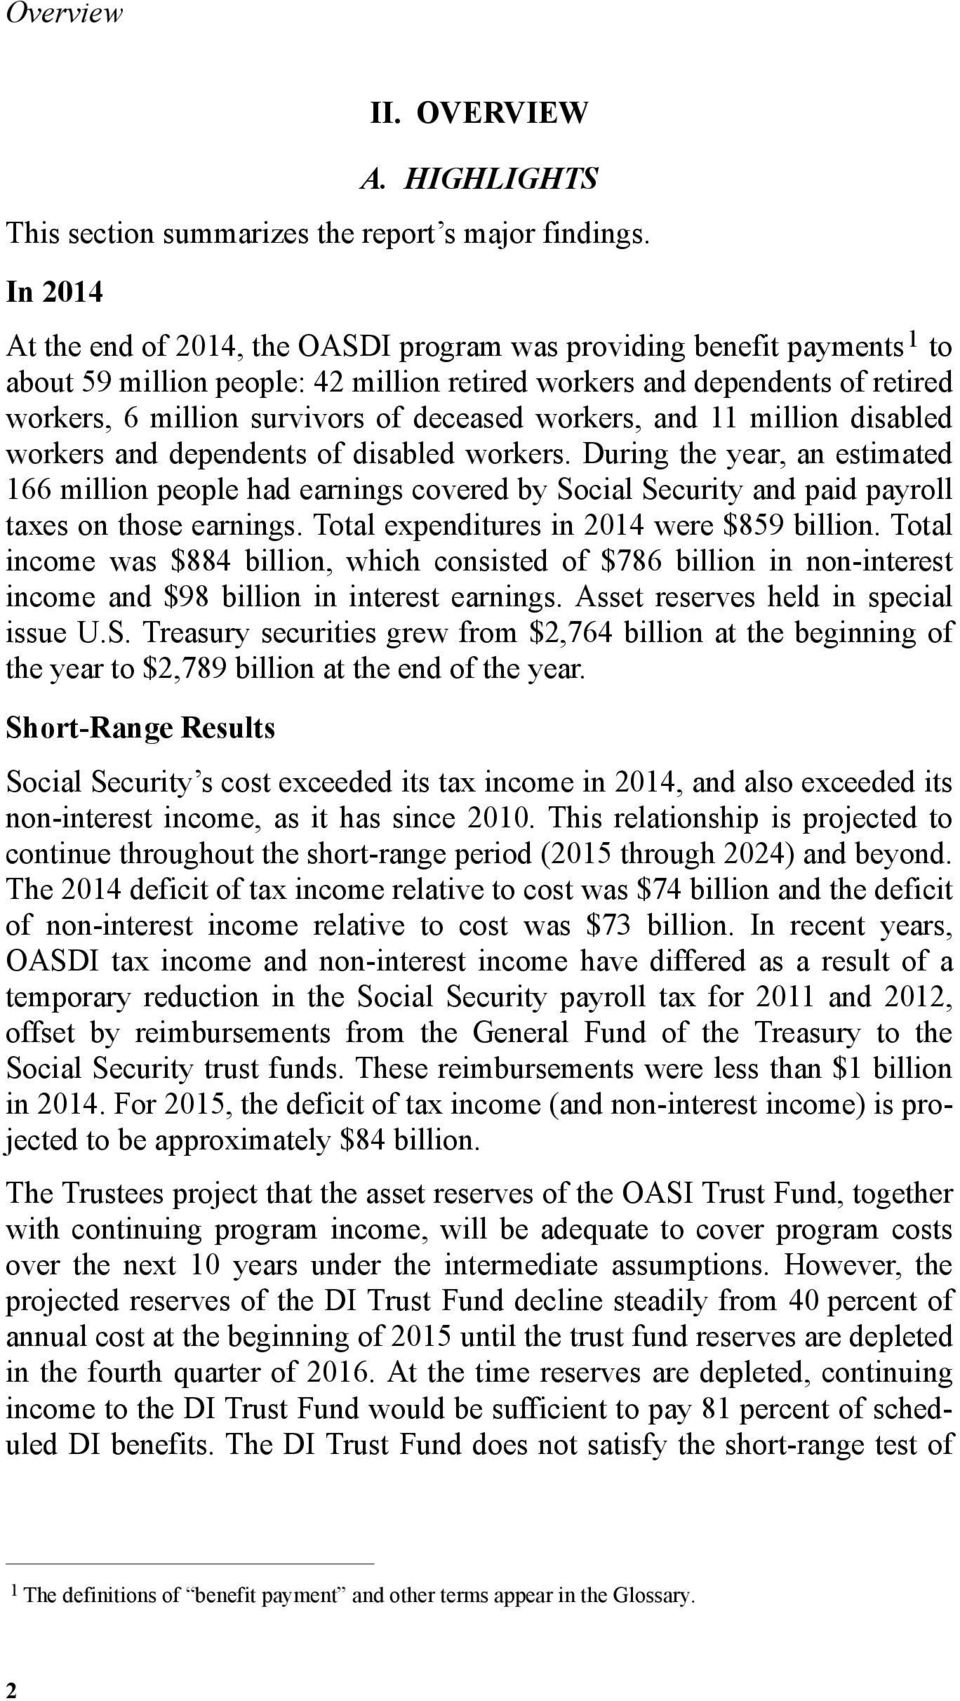 deceased workers, and 11 million disabled workers and dependents of disabled workers.